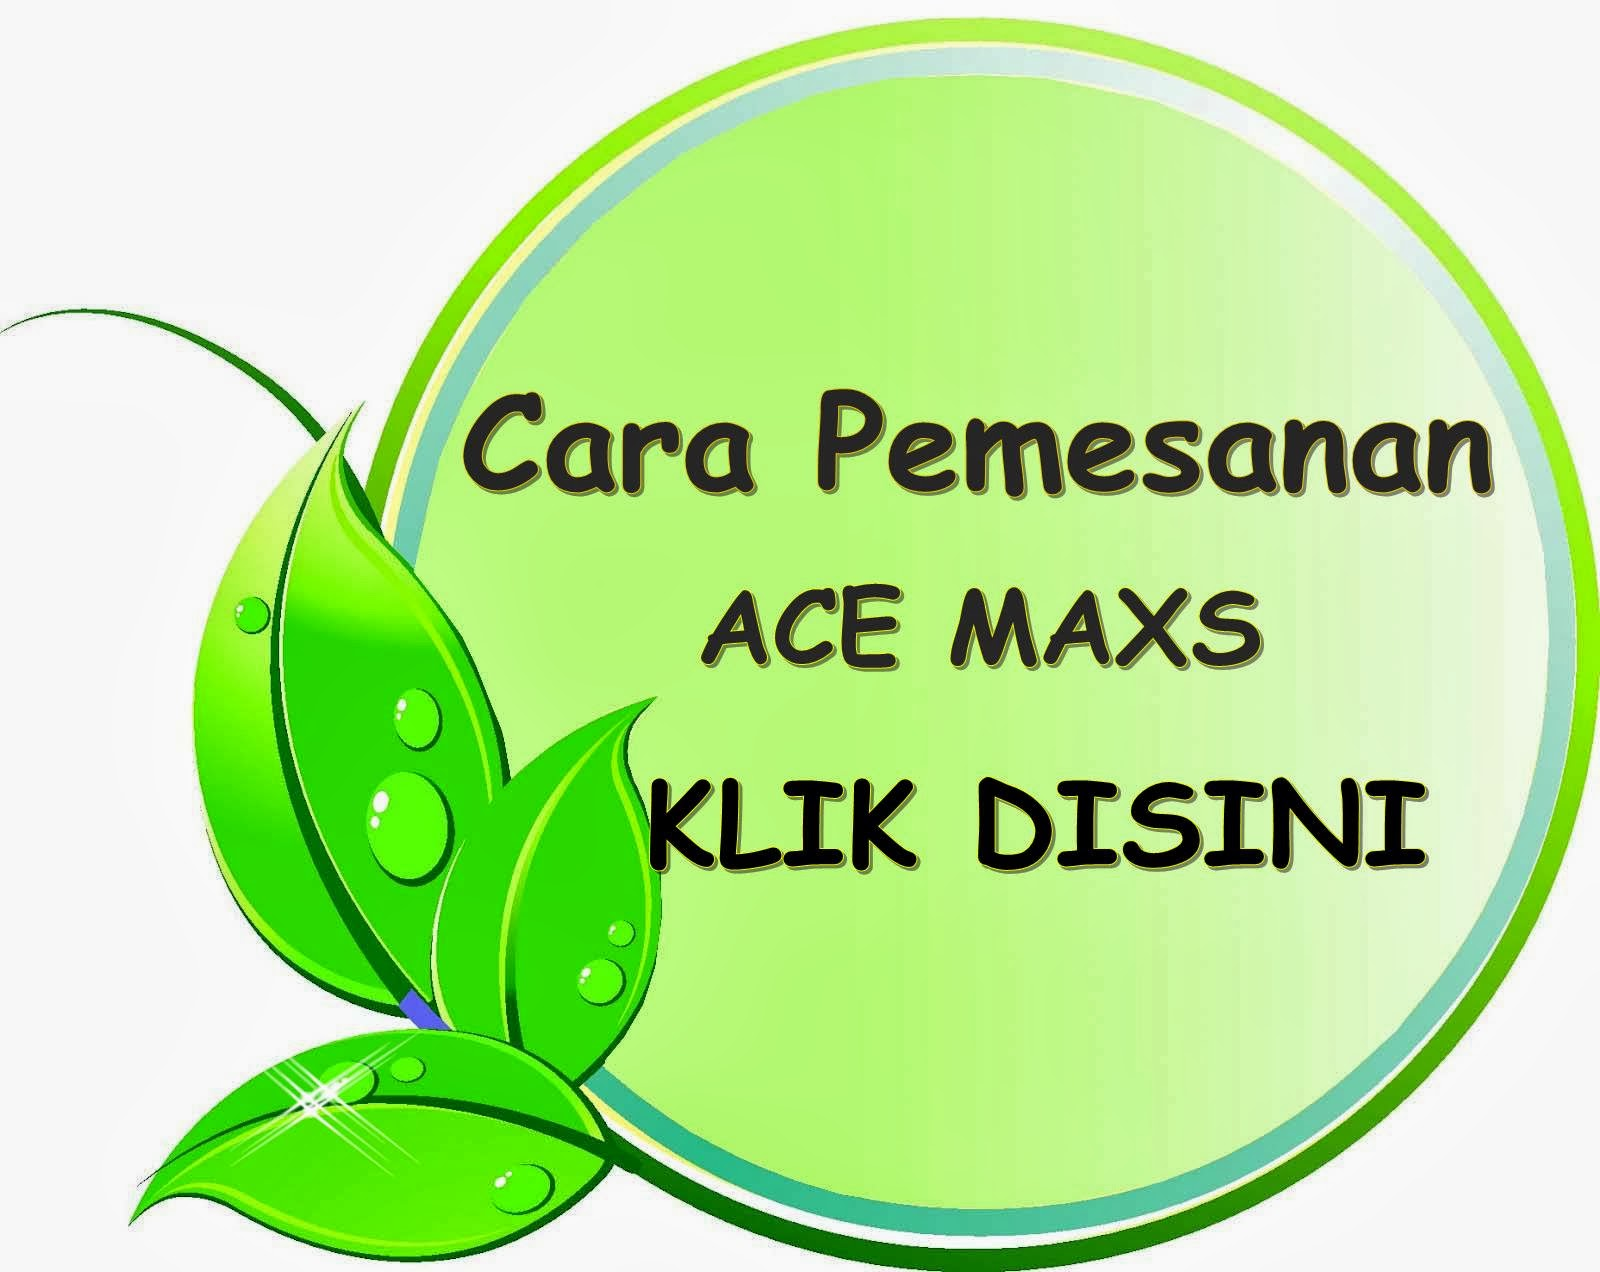 http://www.alternatif-herbal.com/2012/09/cara-pemesanan-obat-herbal-ace-maxs.html